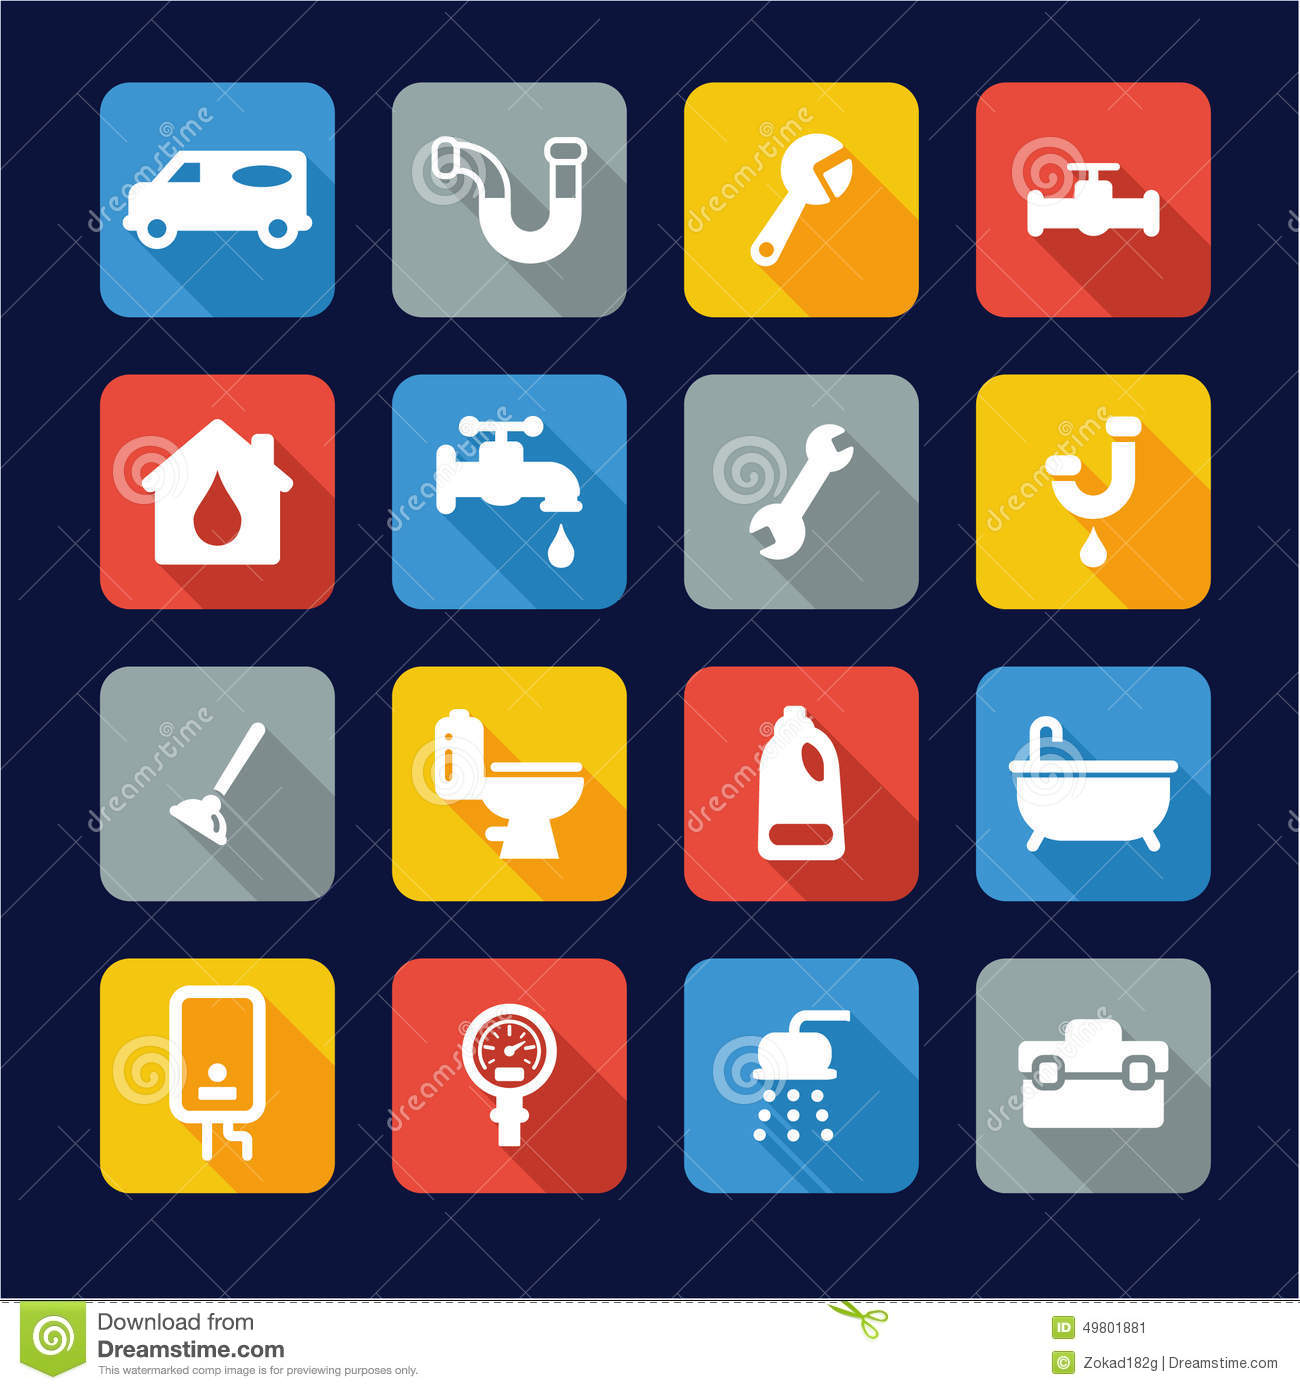 Kitchen Faucet Wrench Plumbing Icons Flat Design Stock Vector Image 49801881